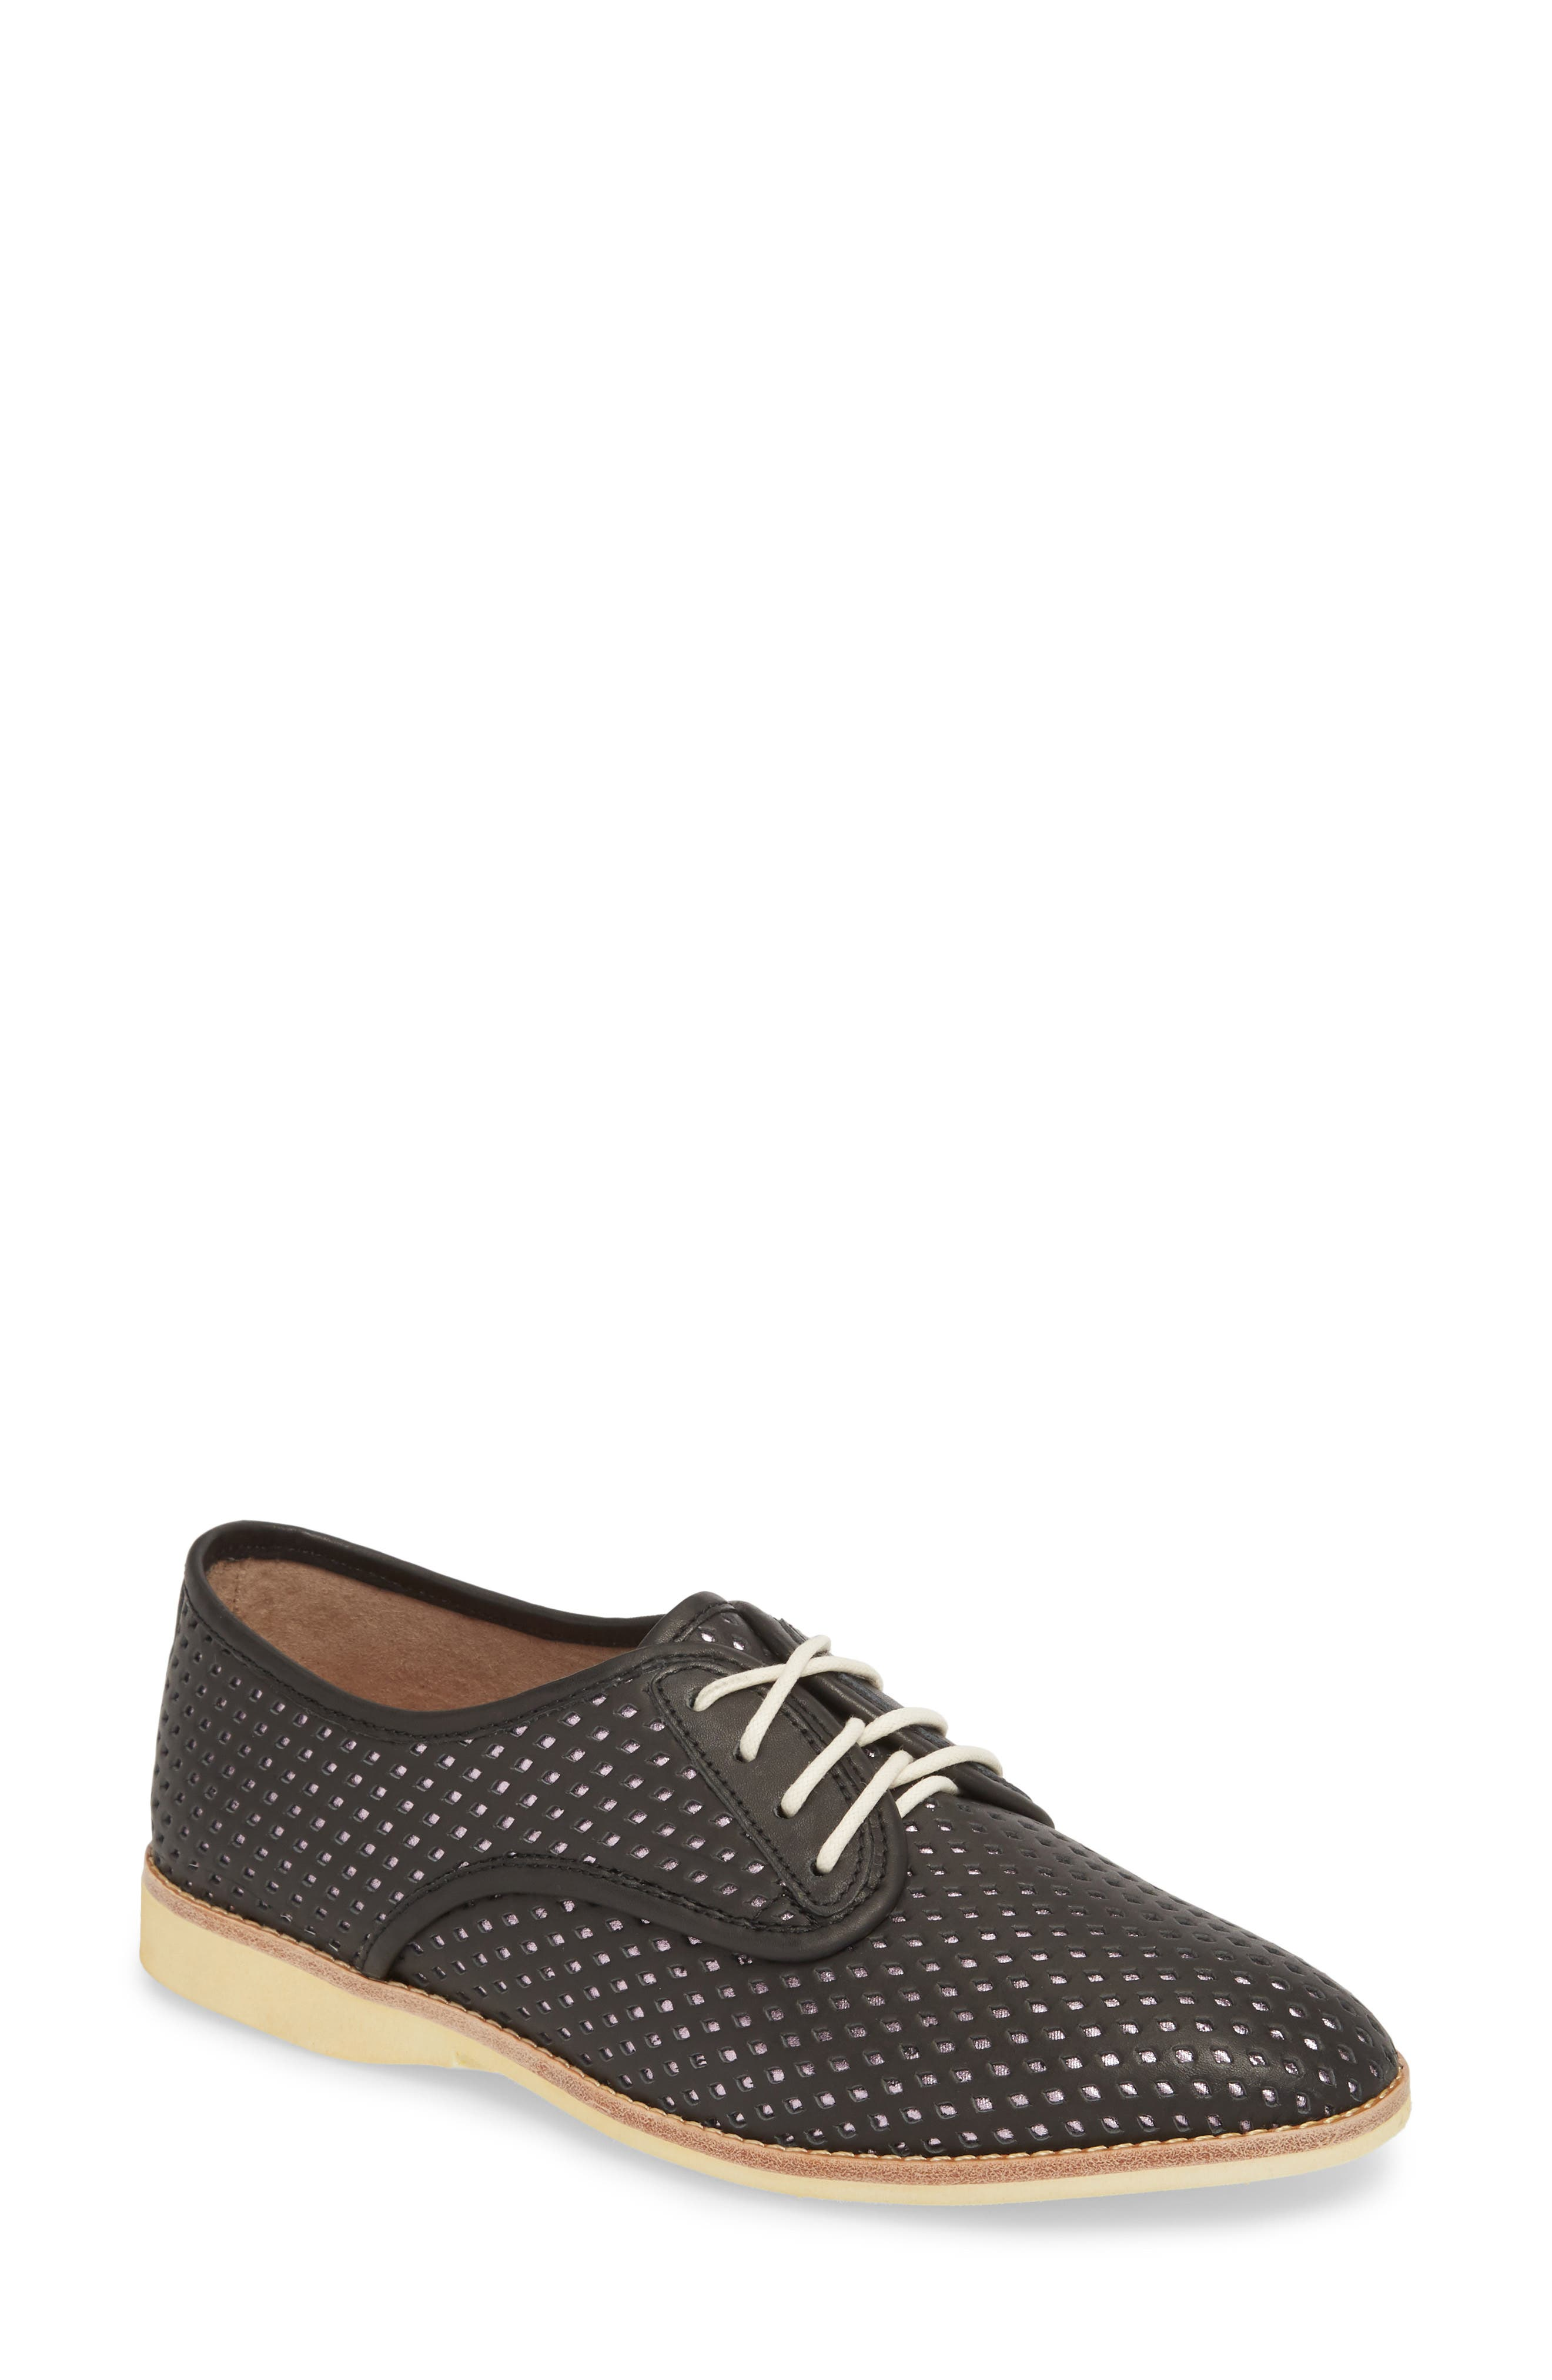 Punch Perforated Derby,                             Main thumbnail 1, color,                             BLACK/ ROSE GOLD LEATHER